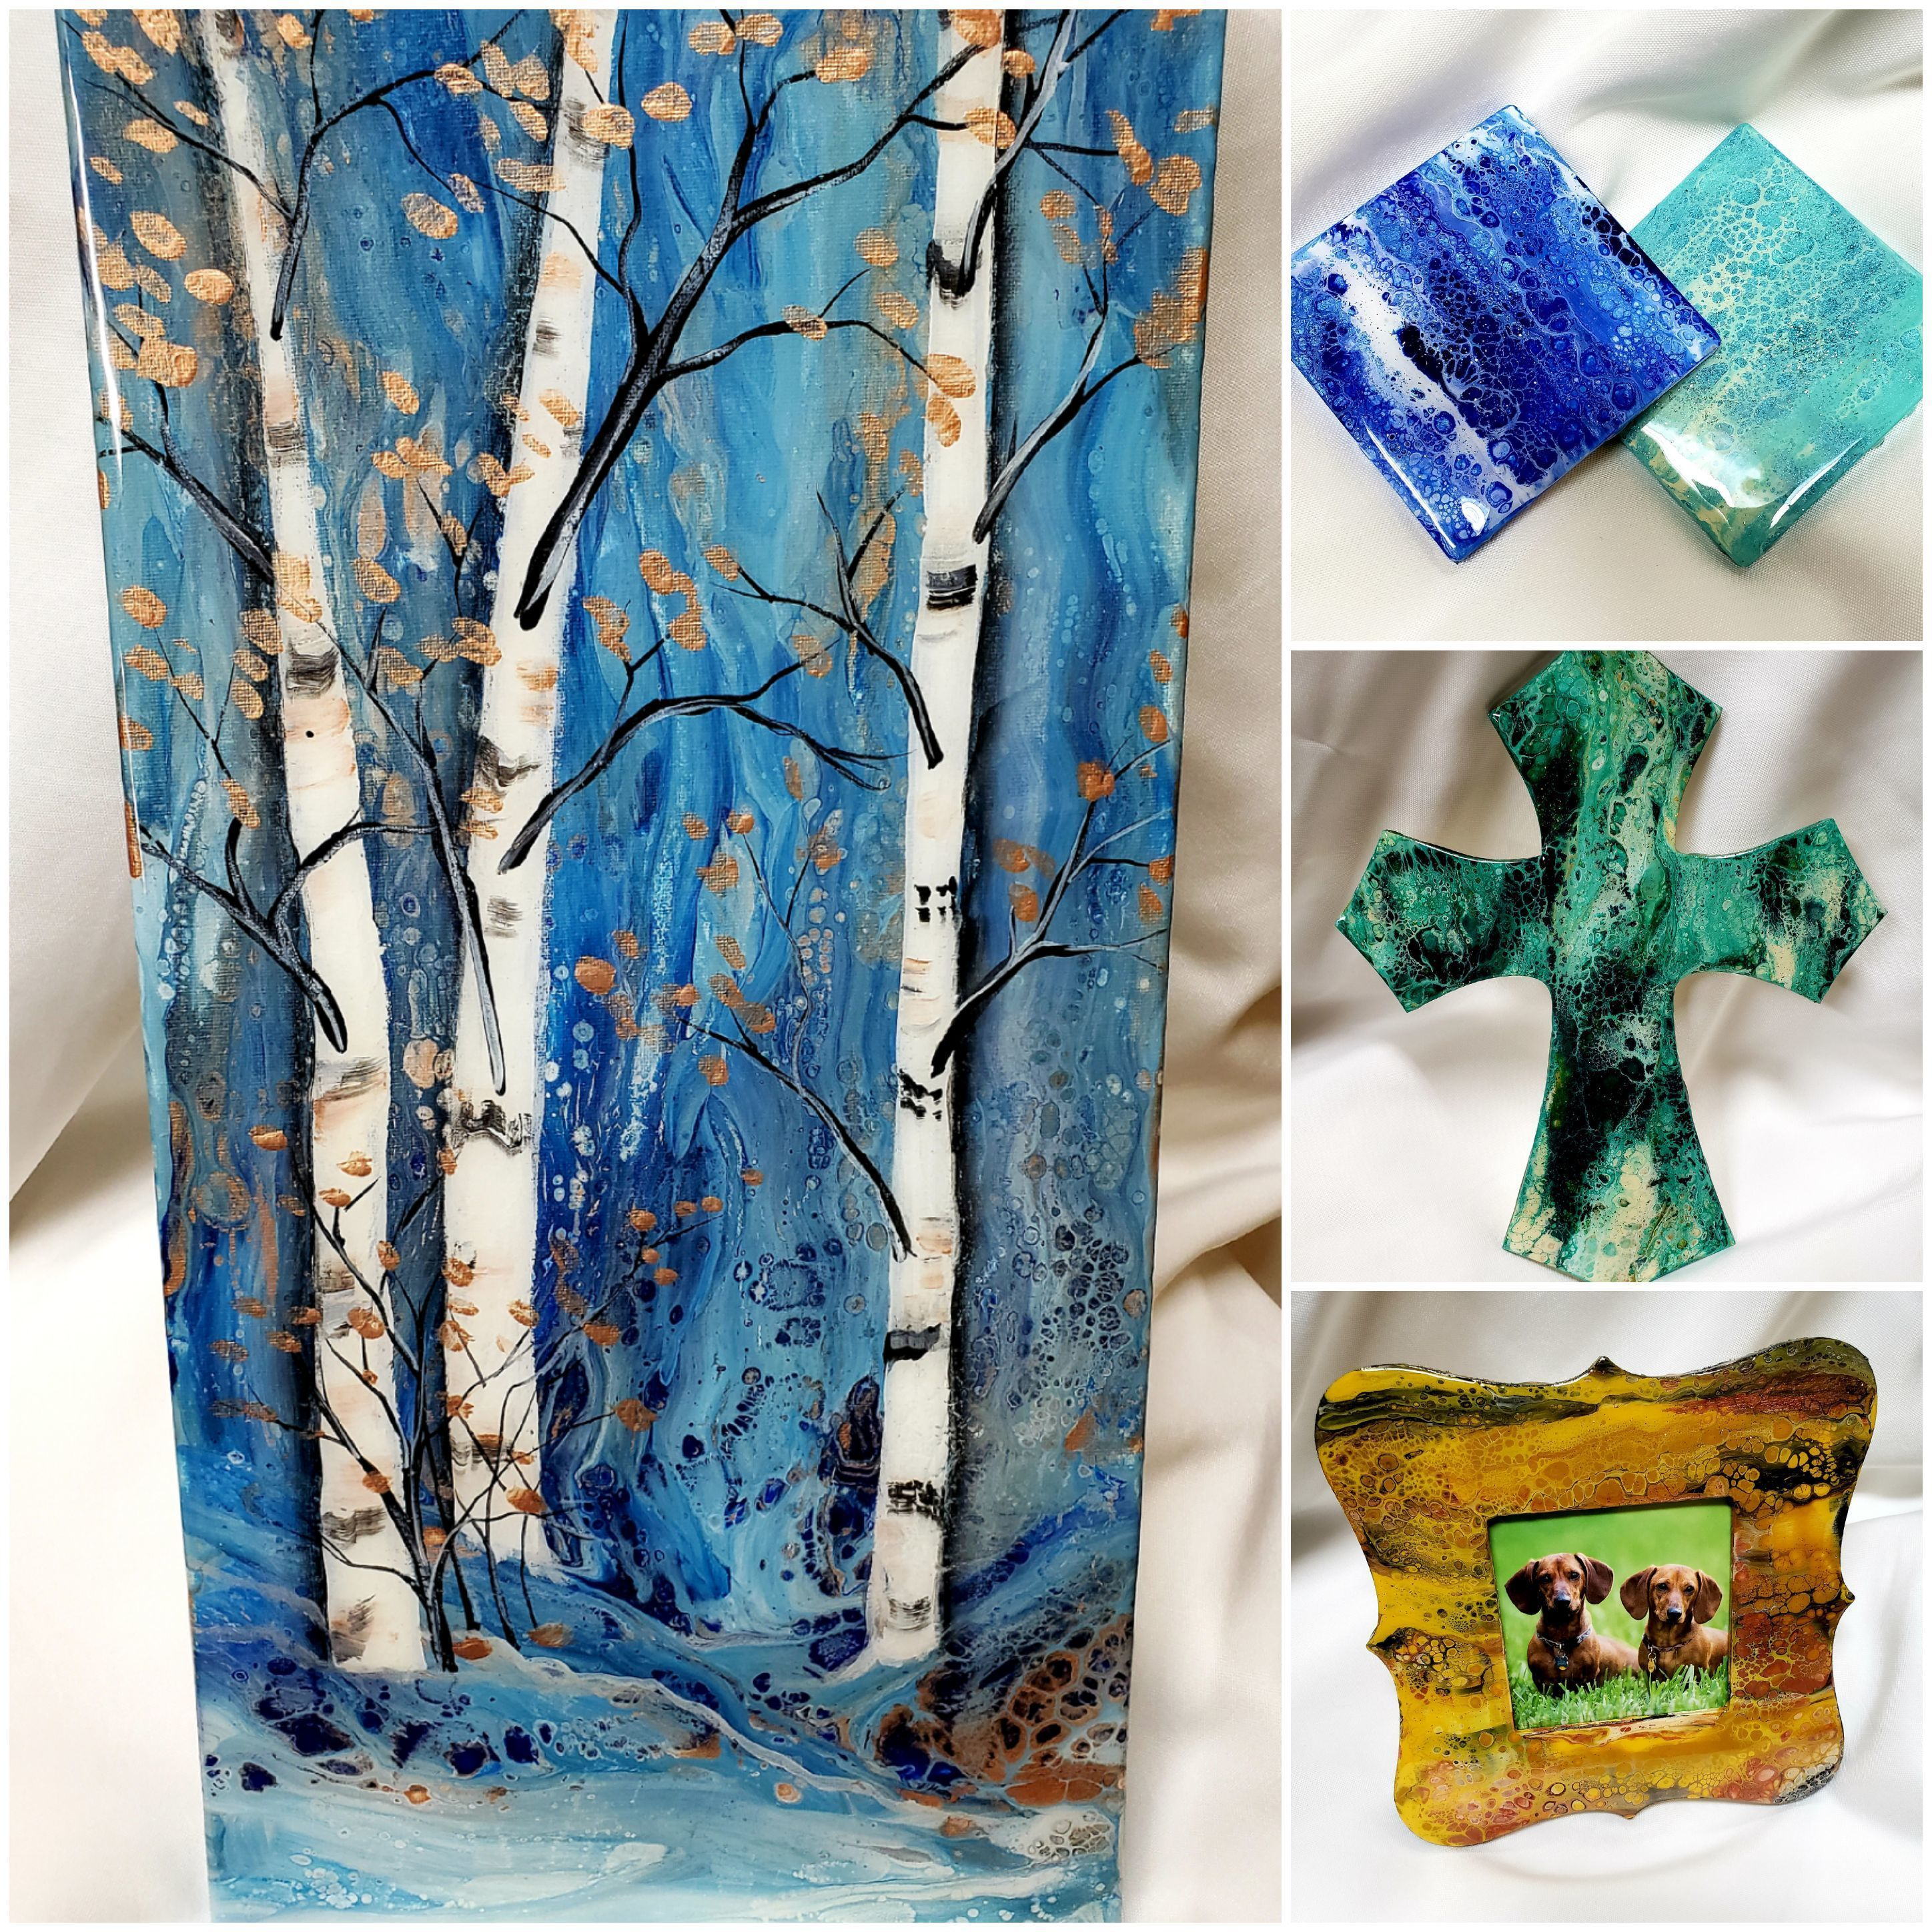 Acrylic Pour with Resin Mini Workshop with Linda Anderson-Paine